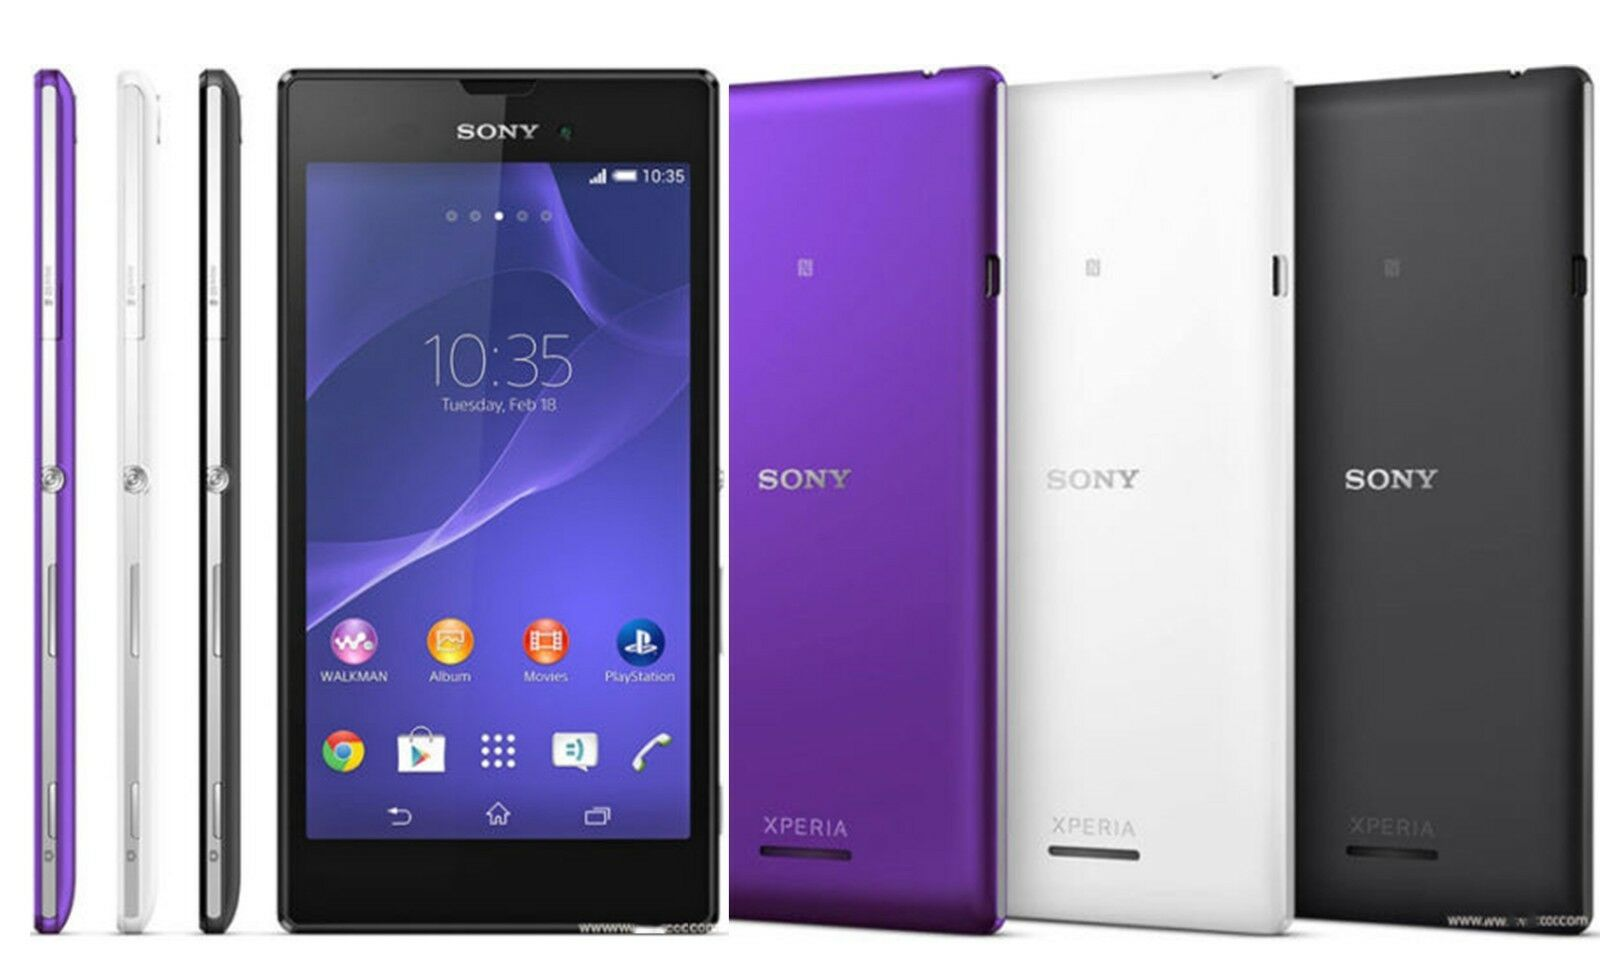 SELLER REFURBISHED 8GB SONY XPERIA T3 D5103SMARTPHONE FACTORY UNLOCKED BLACK WHITE PURPLE NFC PHONE